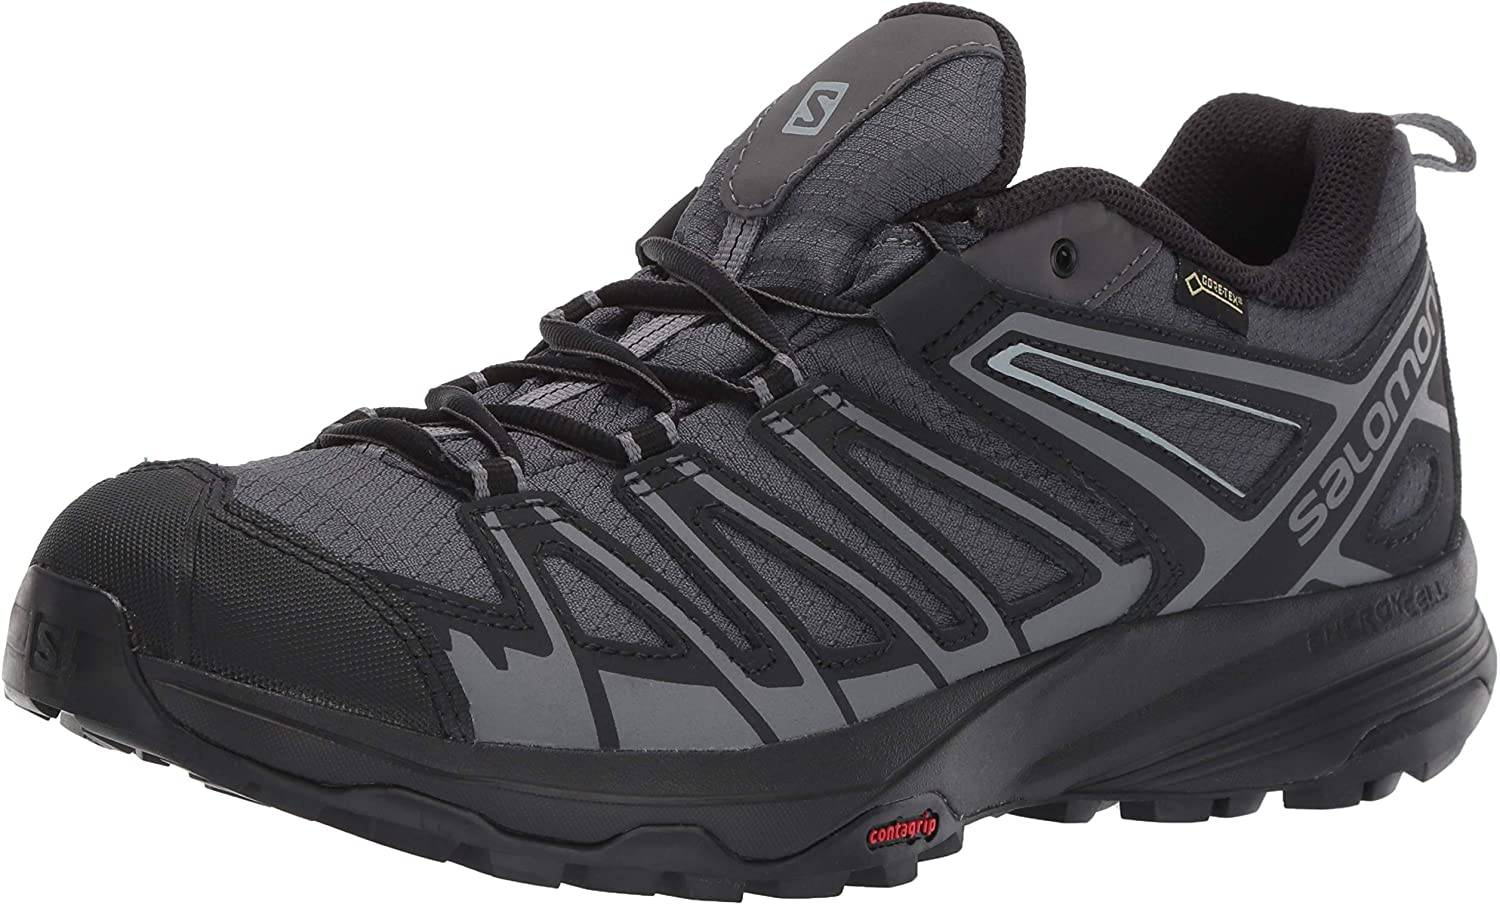 Salomon Men s X Crest GTX Hiking Shoes